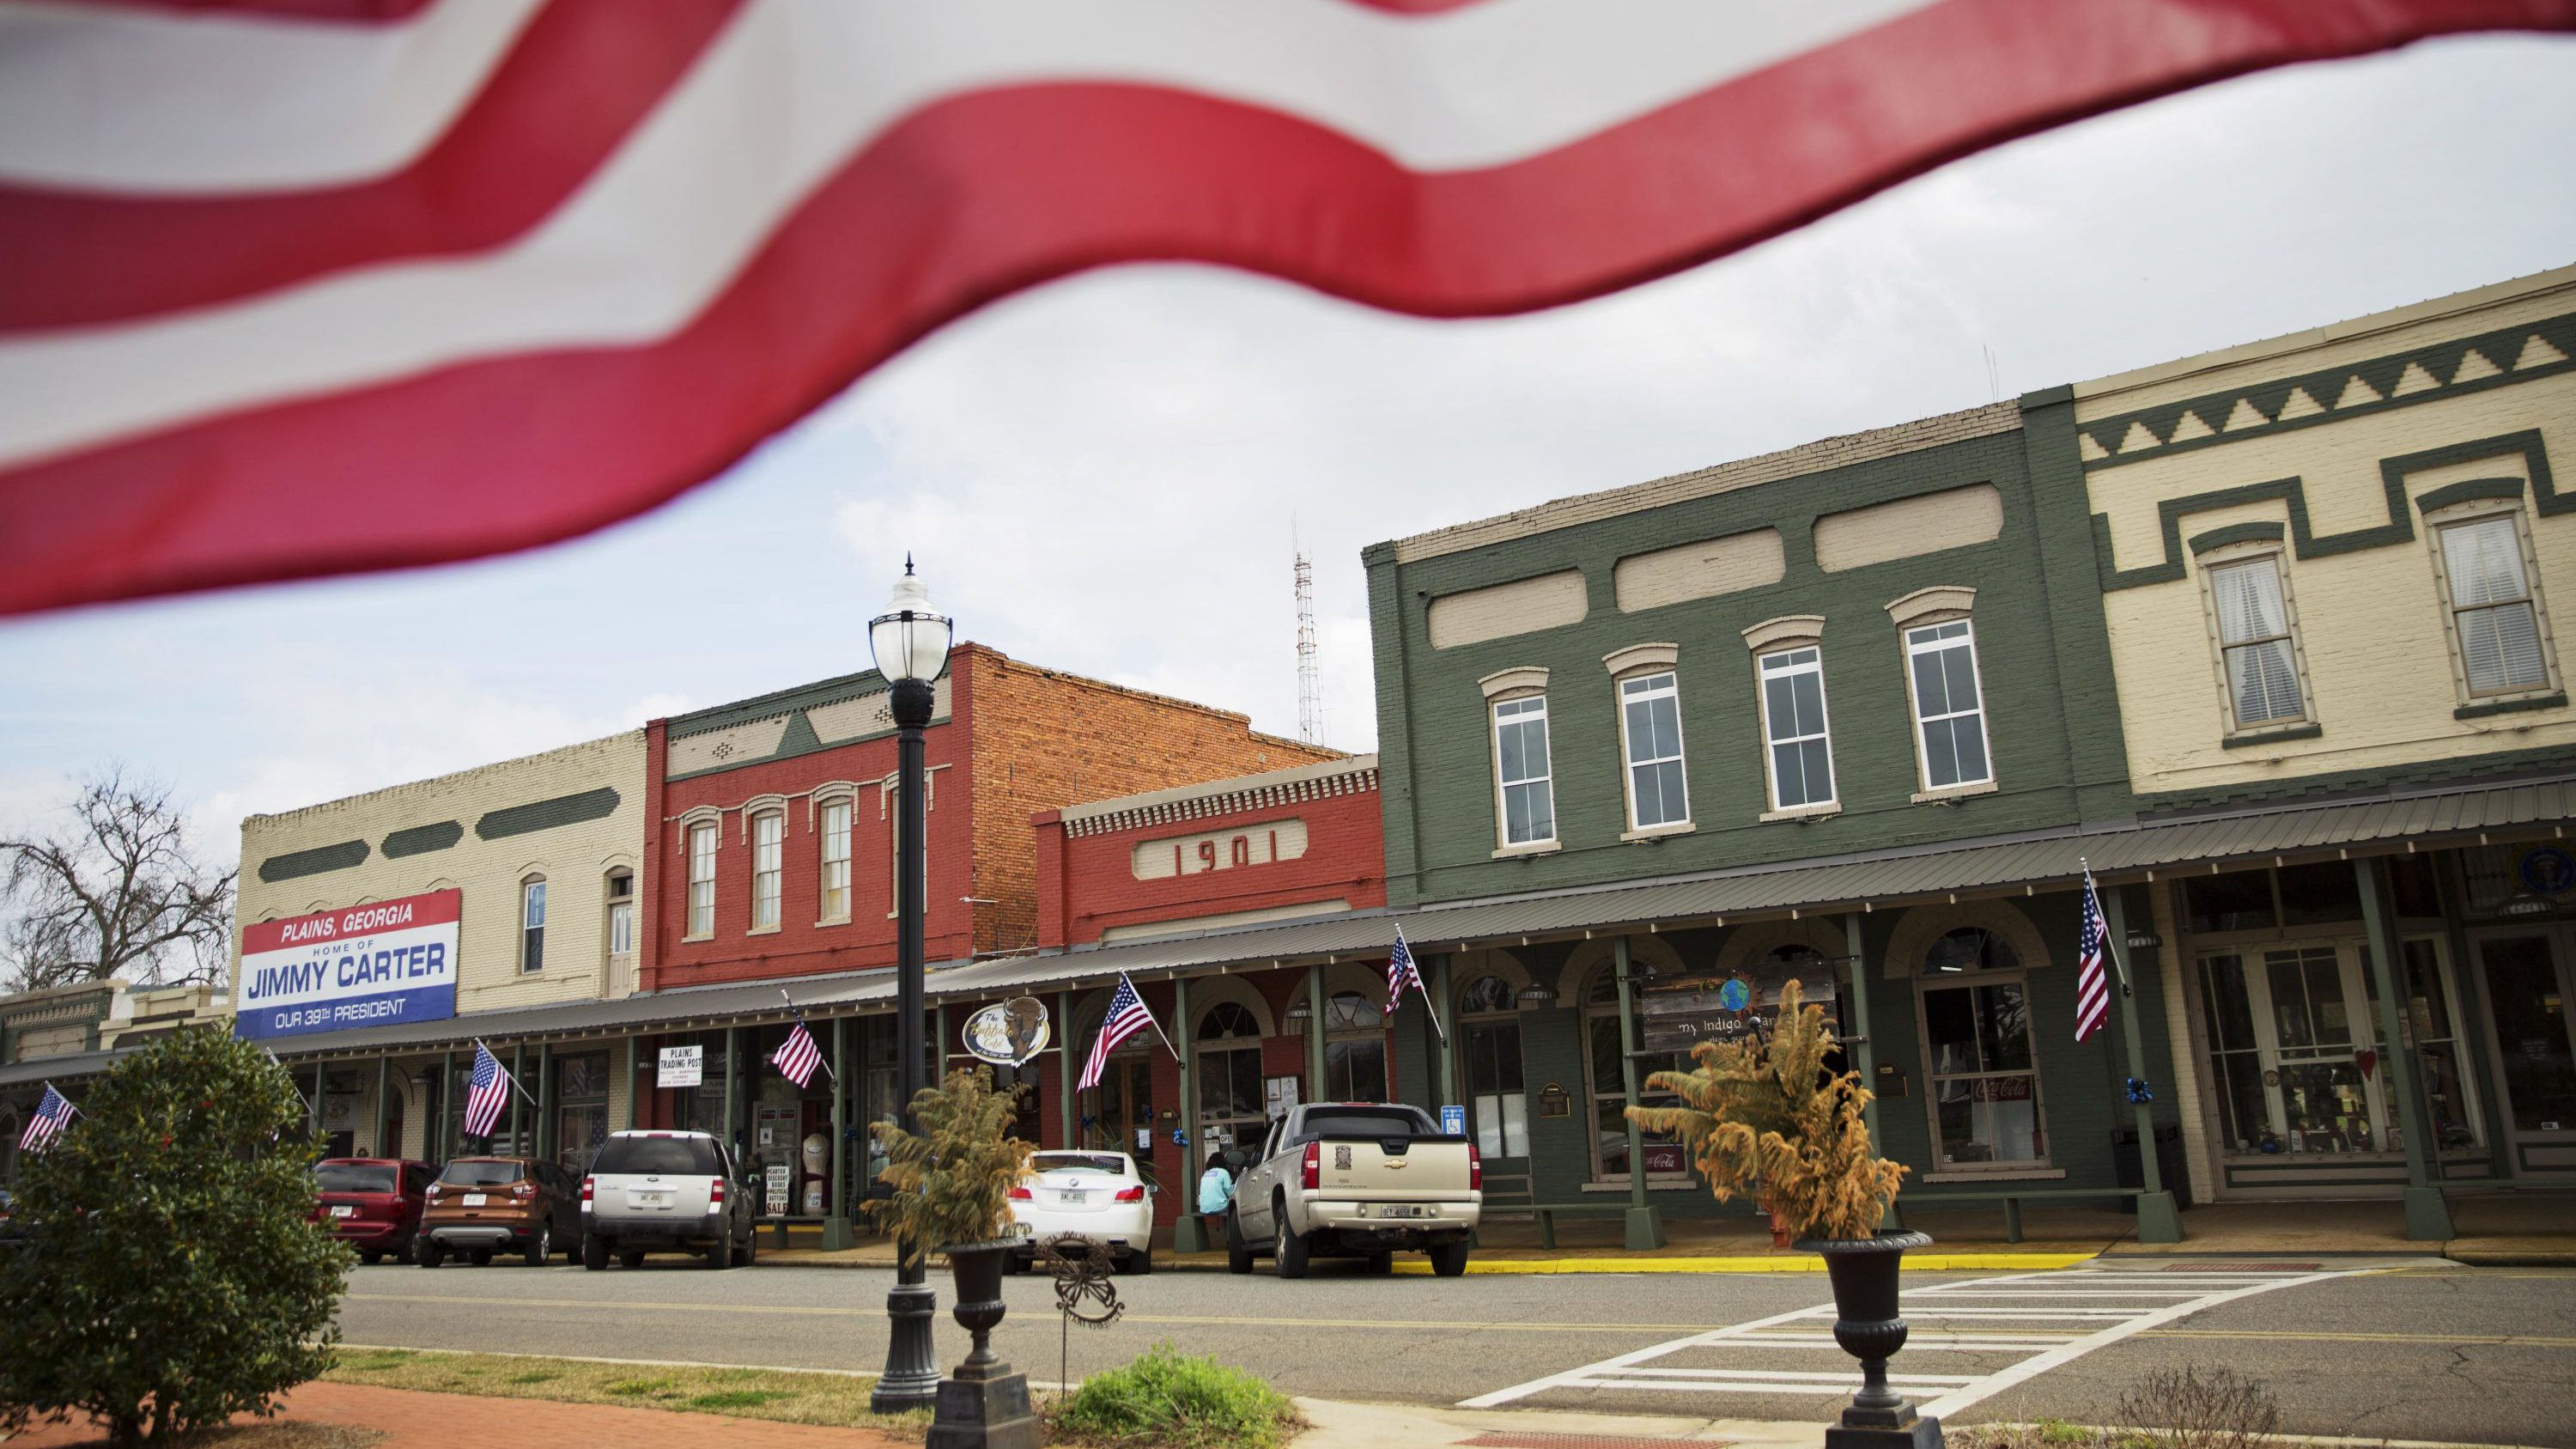 An American flag flies in front of Main Street in the hometown of former President Jimmy Carter in Plains, Ga., Wednesday, Feb. 8, 2017. A solar panel project built on farmland owned by Carter in his hometown was unveiled Wednesday and is estimated to provide more than half of the power needed in this town of 755 people. Carter leased the land to Atlanta-based SolAmerica Energy, which owns, operates, and sells power generated from solar cells.